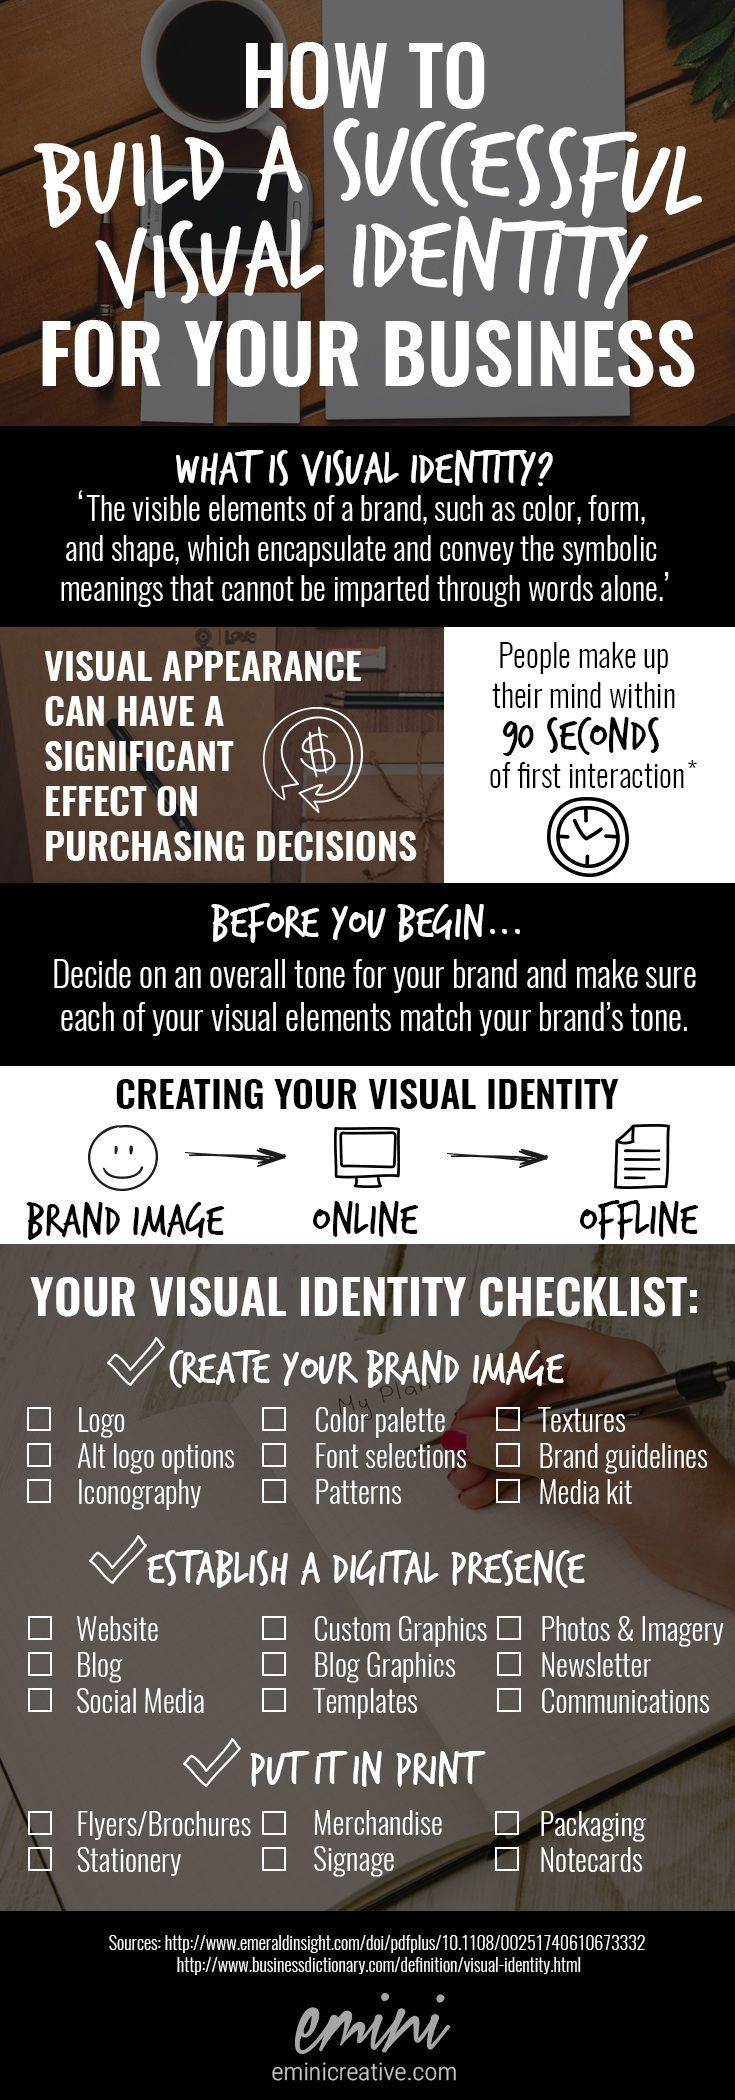 How to Build a Successful Visual Identity